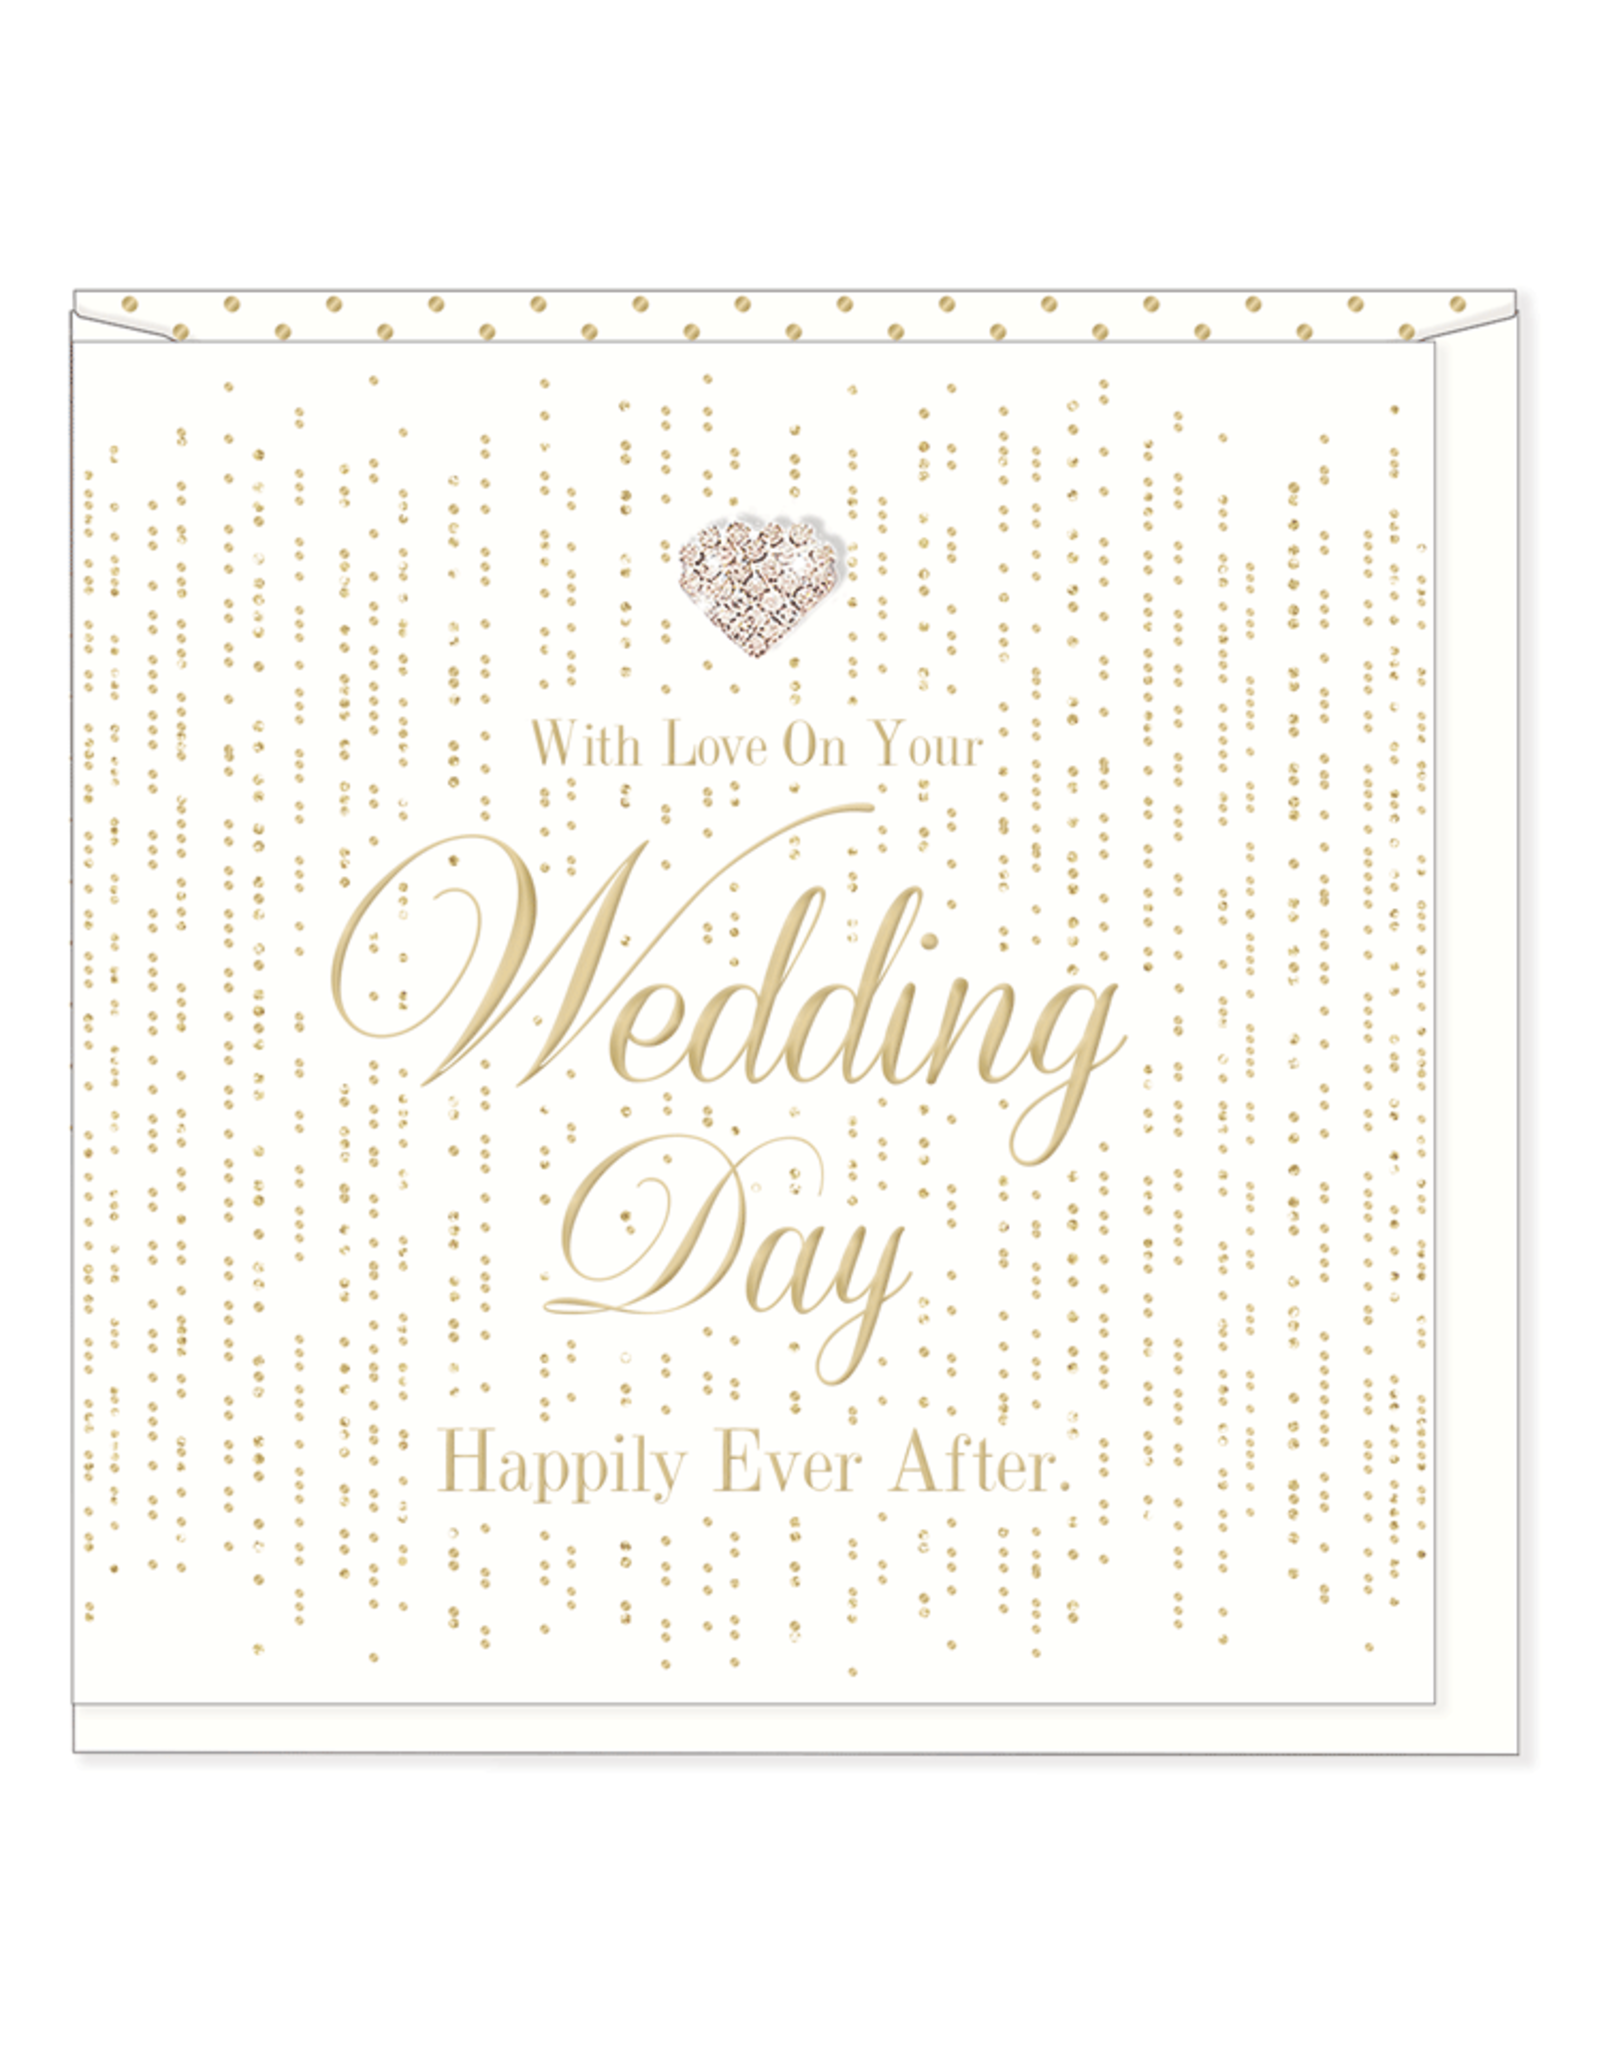 Hearts Design With Love on your Wedding